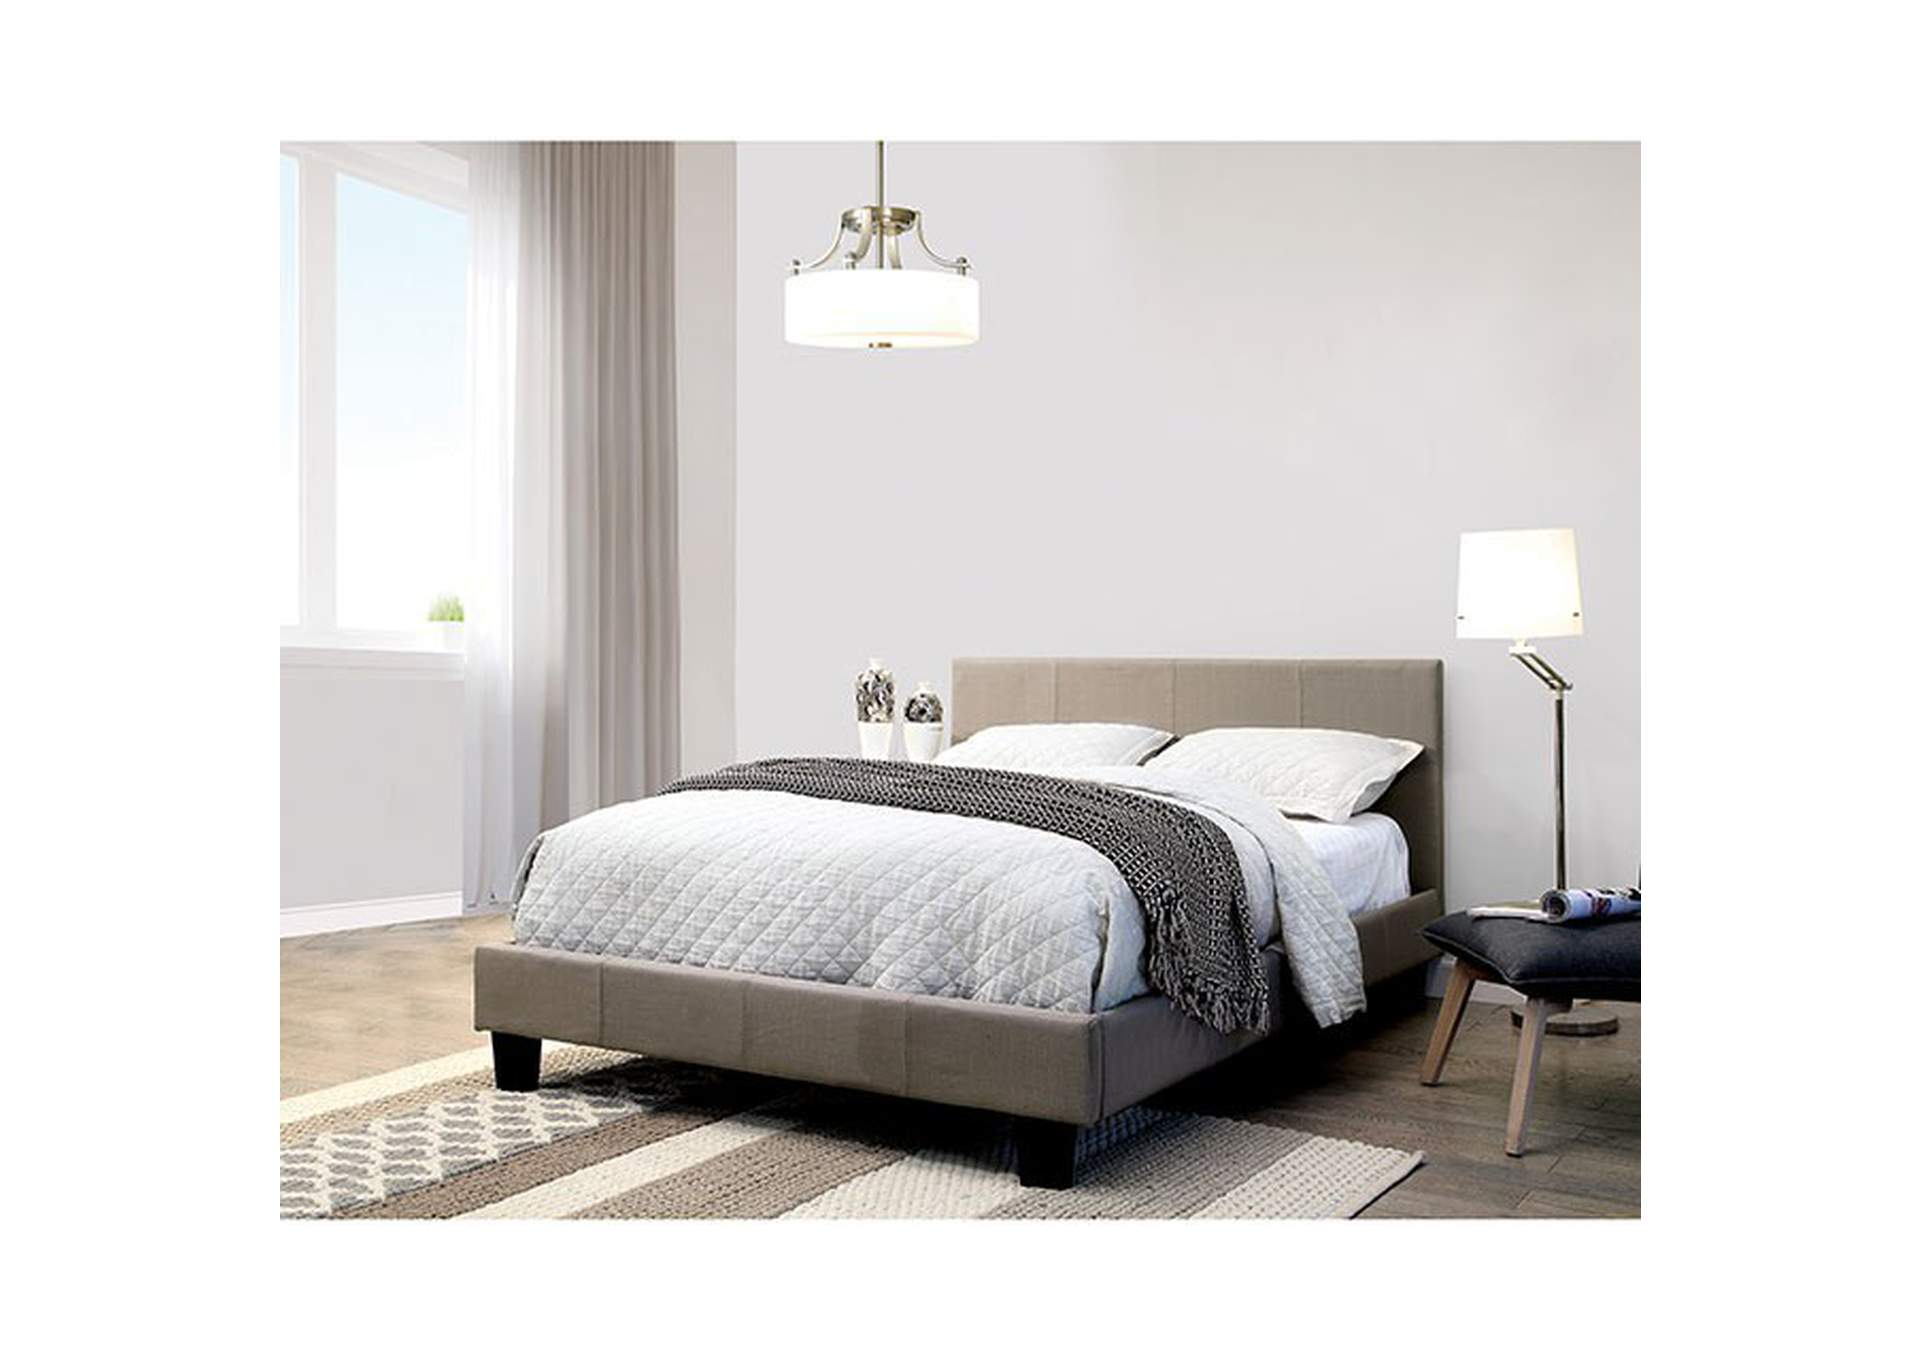 Sims Gray Full Bed,Furniture of America